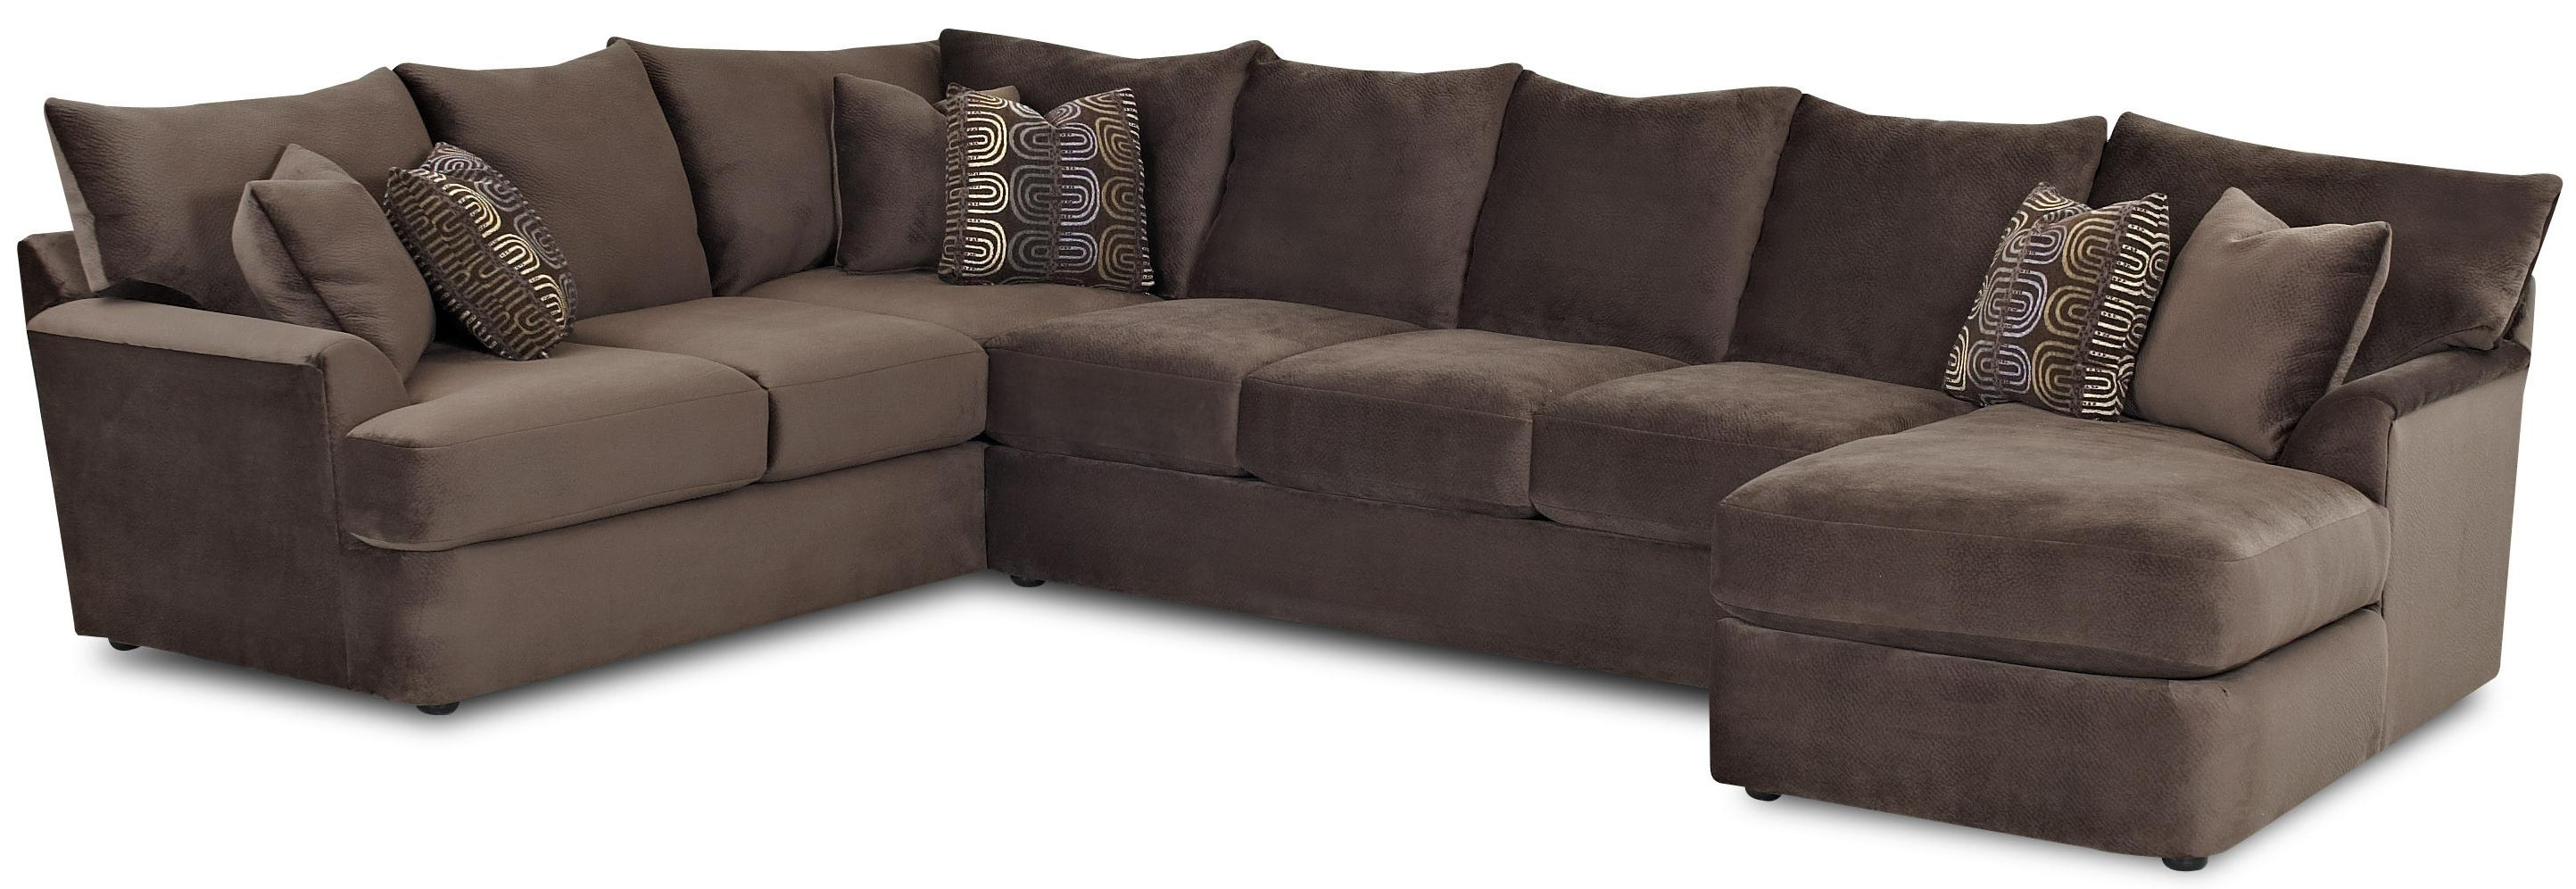 Most Current L Shaped Sectional Sofa With Left Chaiseklaussner (View 3 of 15)